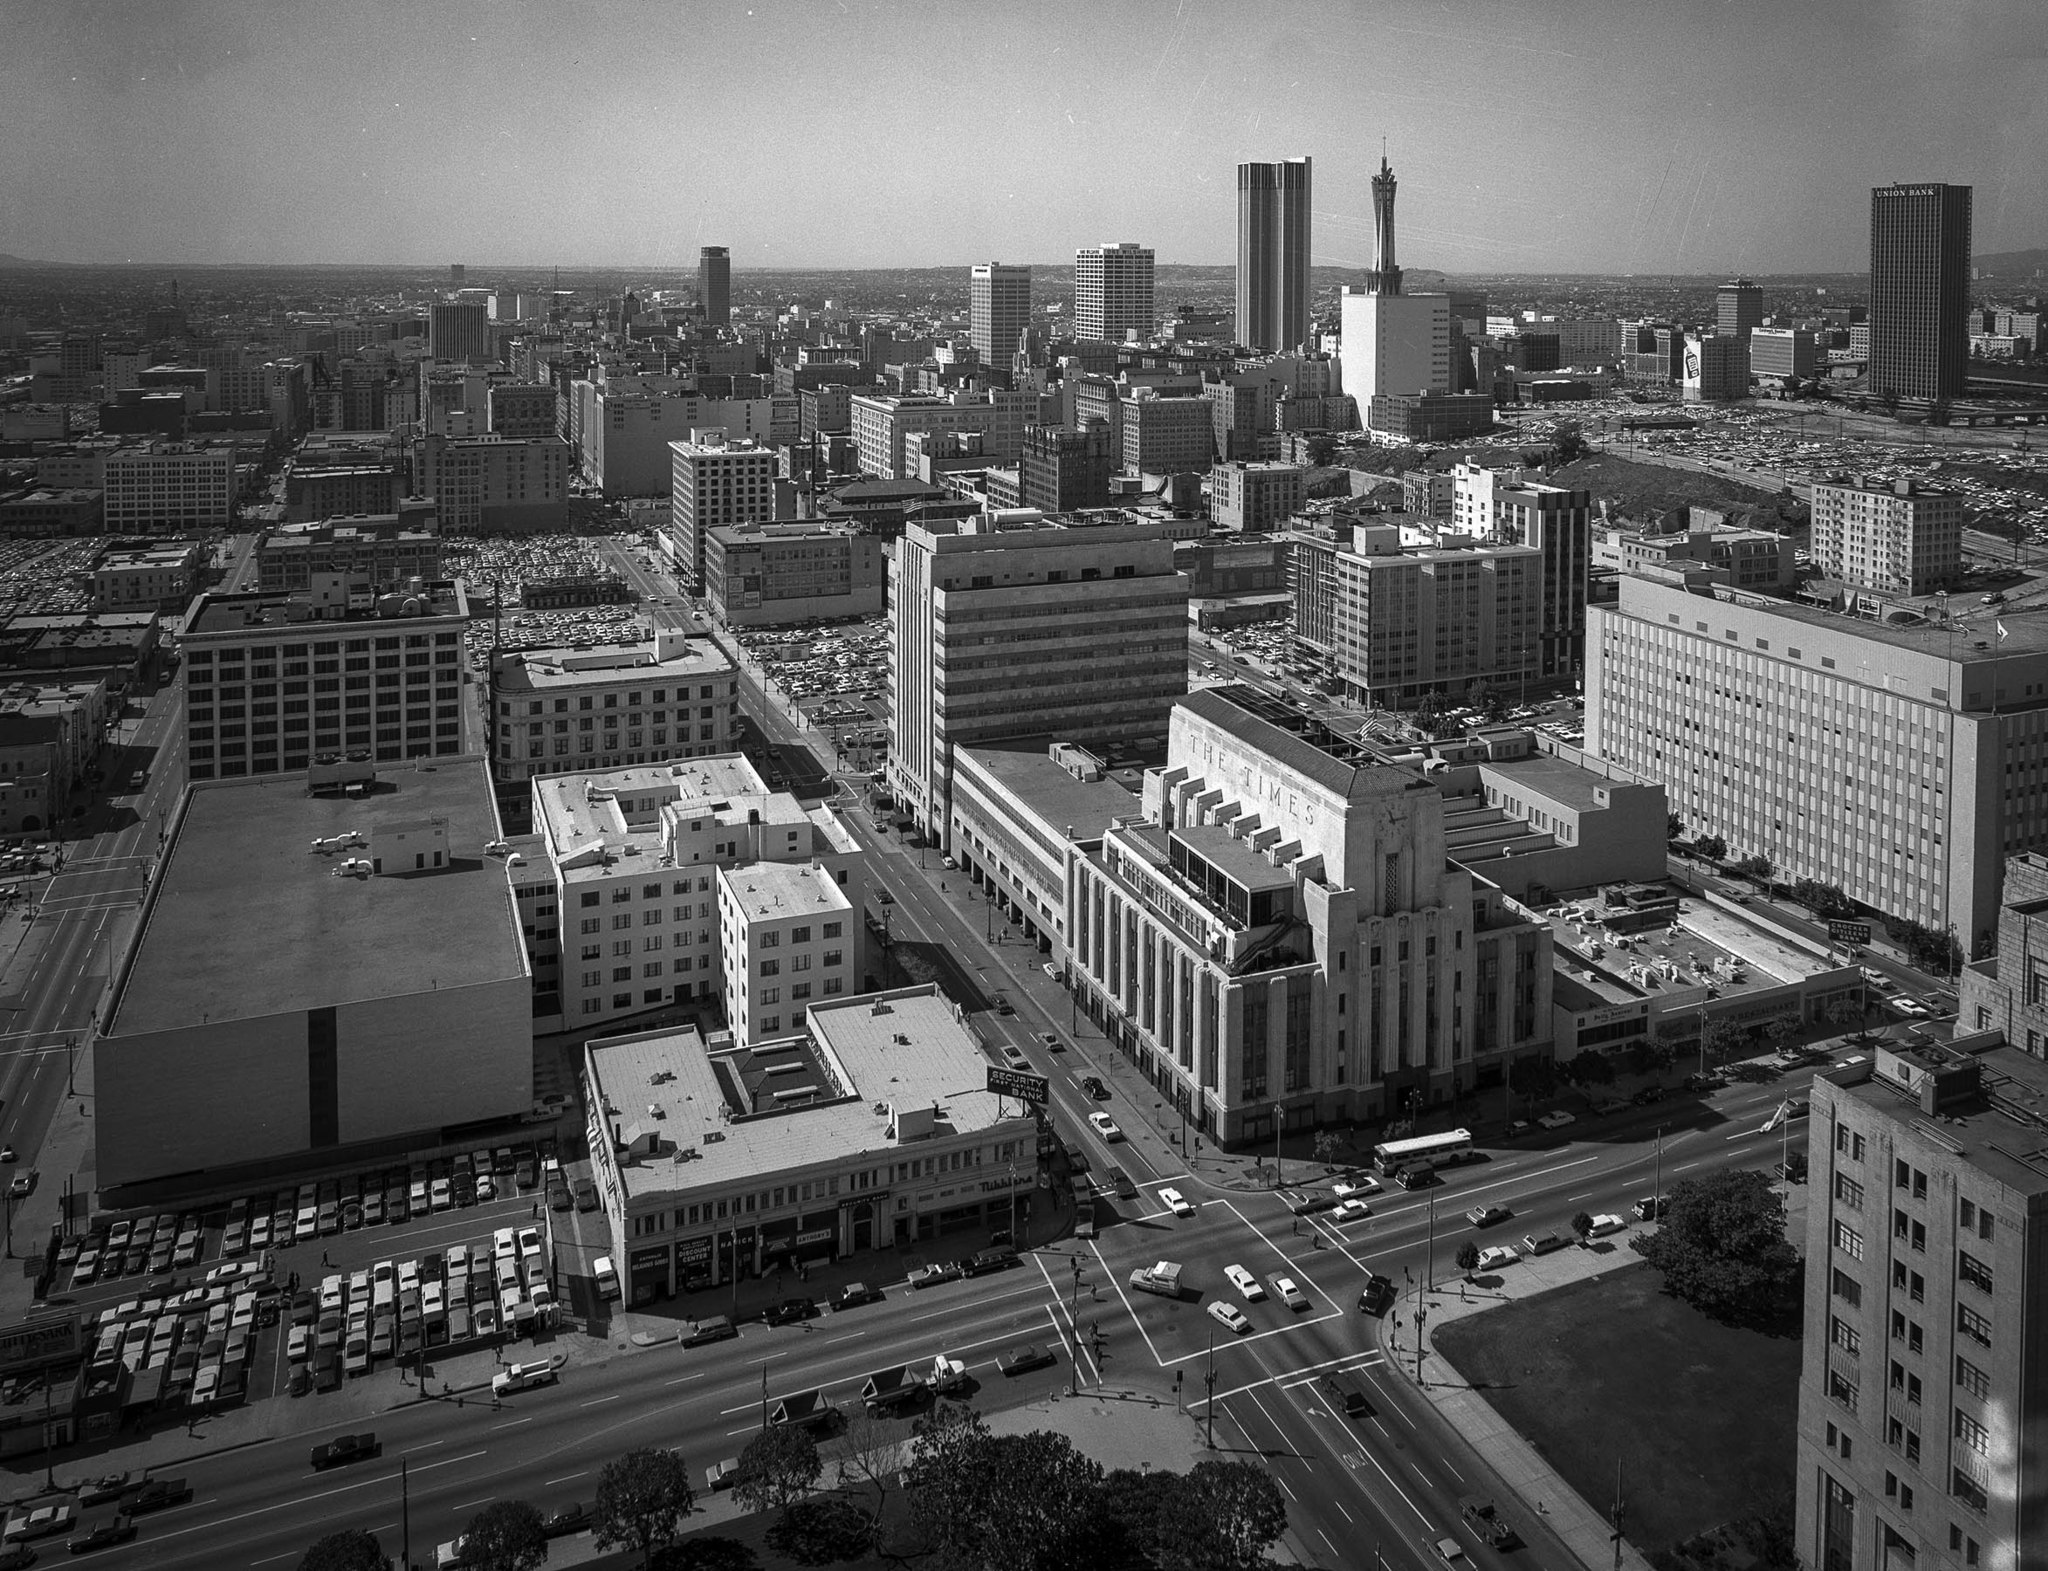 1970 photo of the Los Angeles Times Buildings from the top of Los Angeles City Hall. Photo taken fo